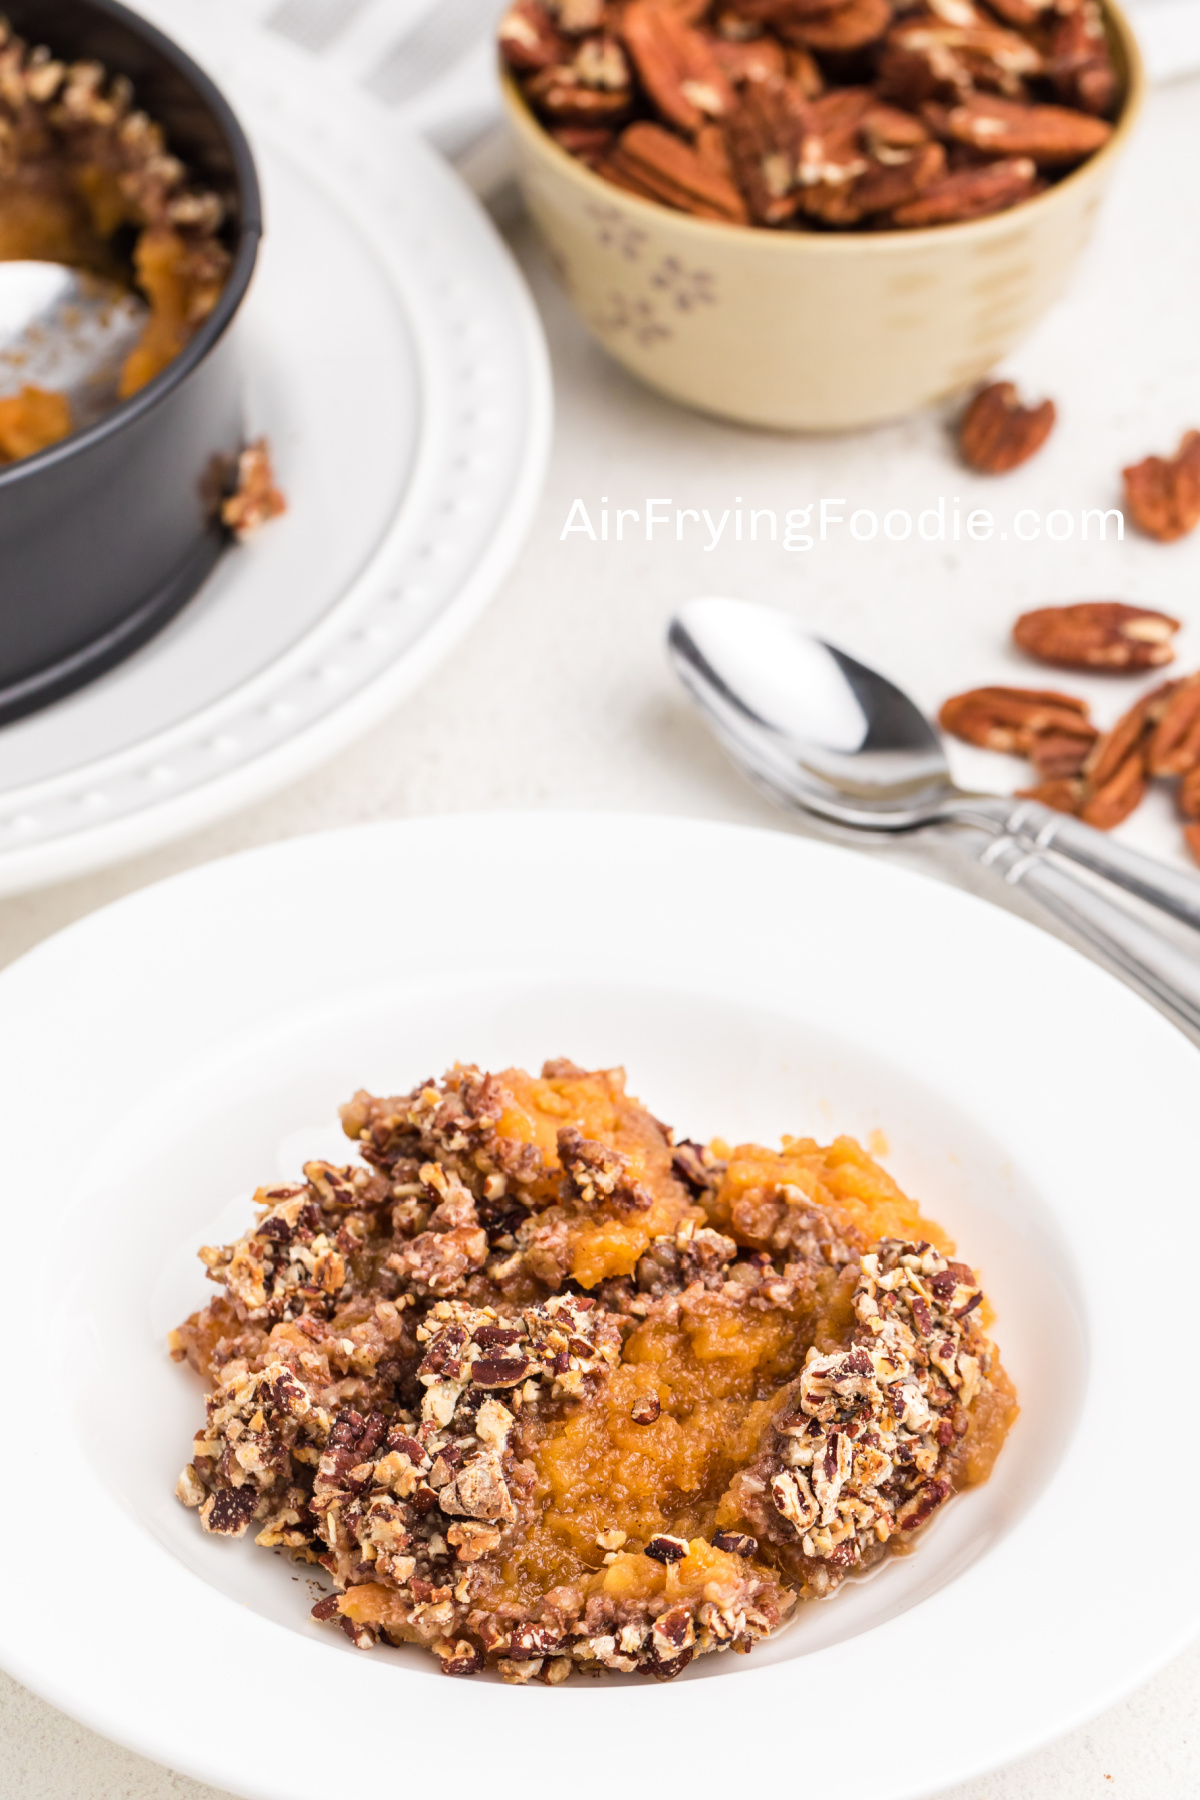 Sweet Potato Casserole topped with pecans in a white dish ready to eat.